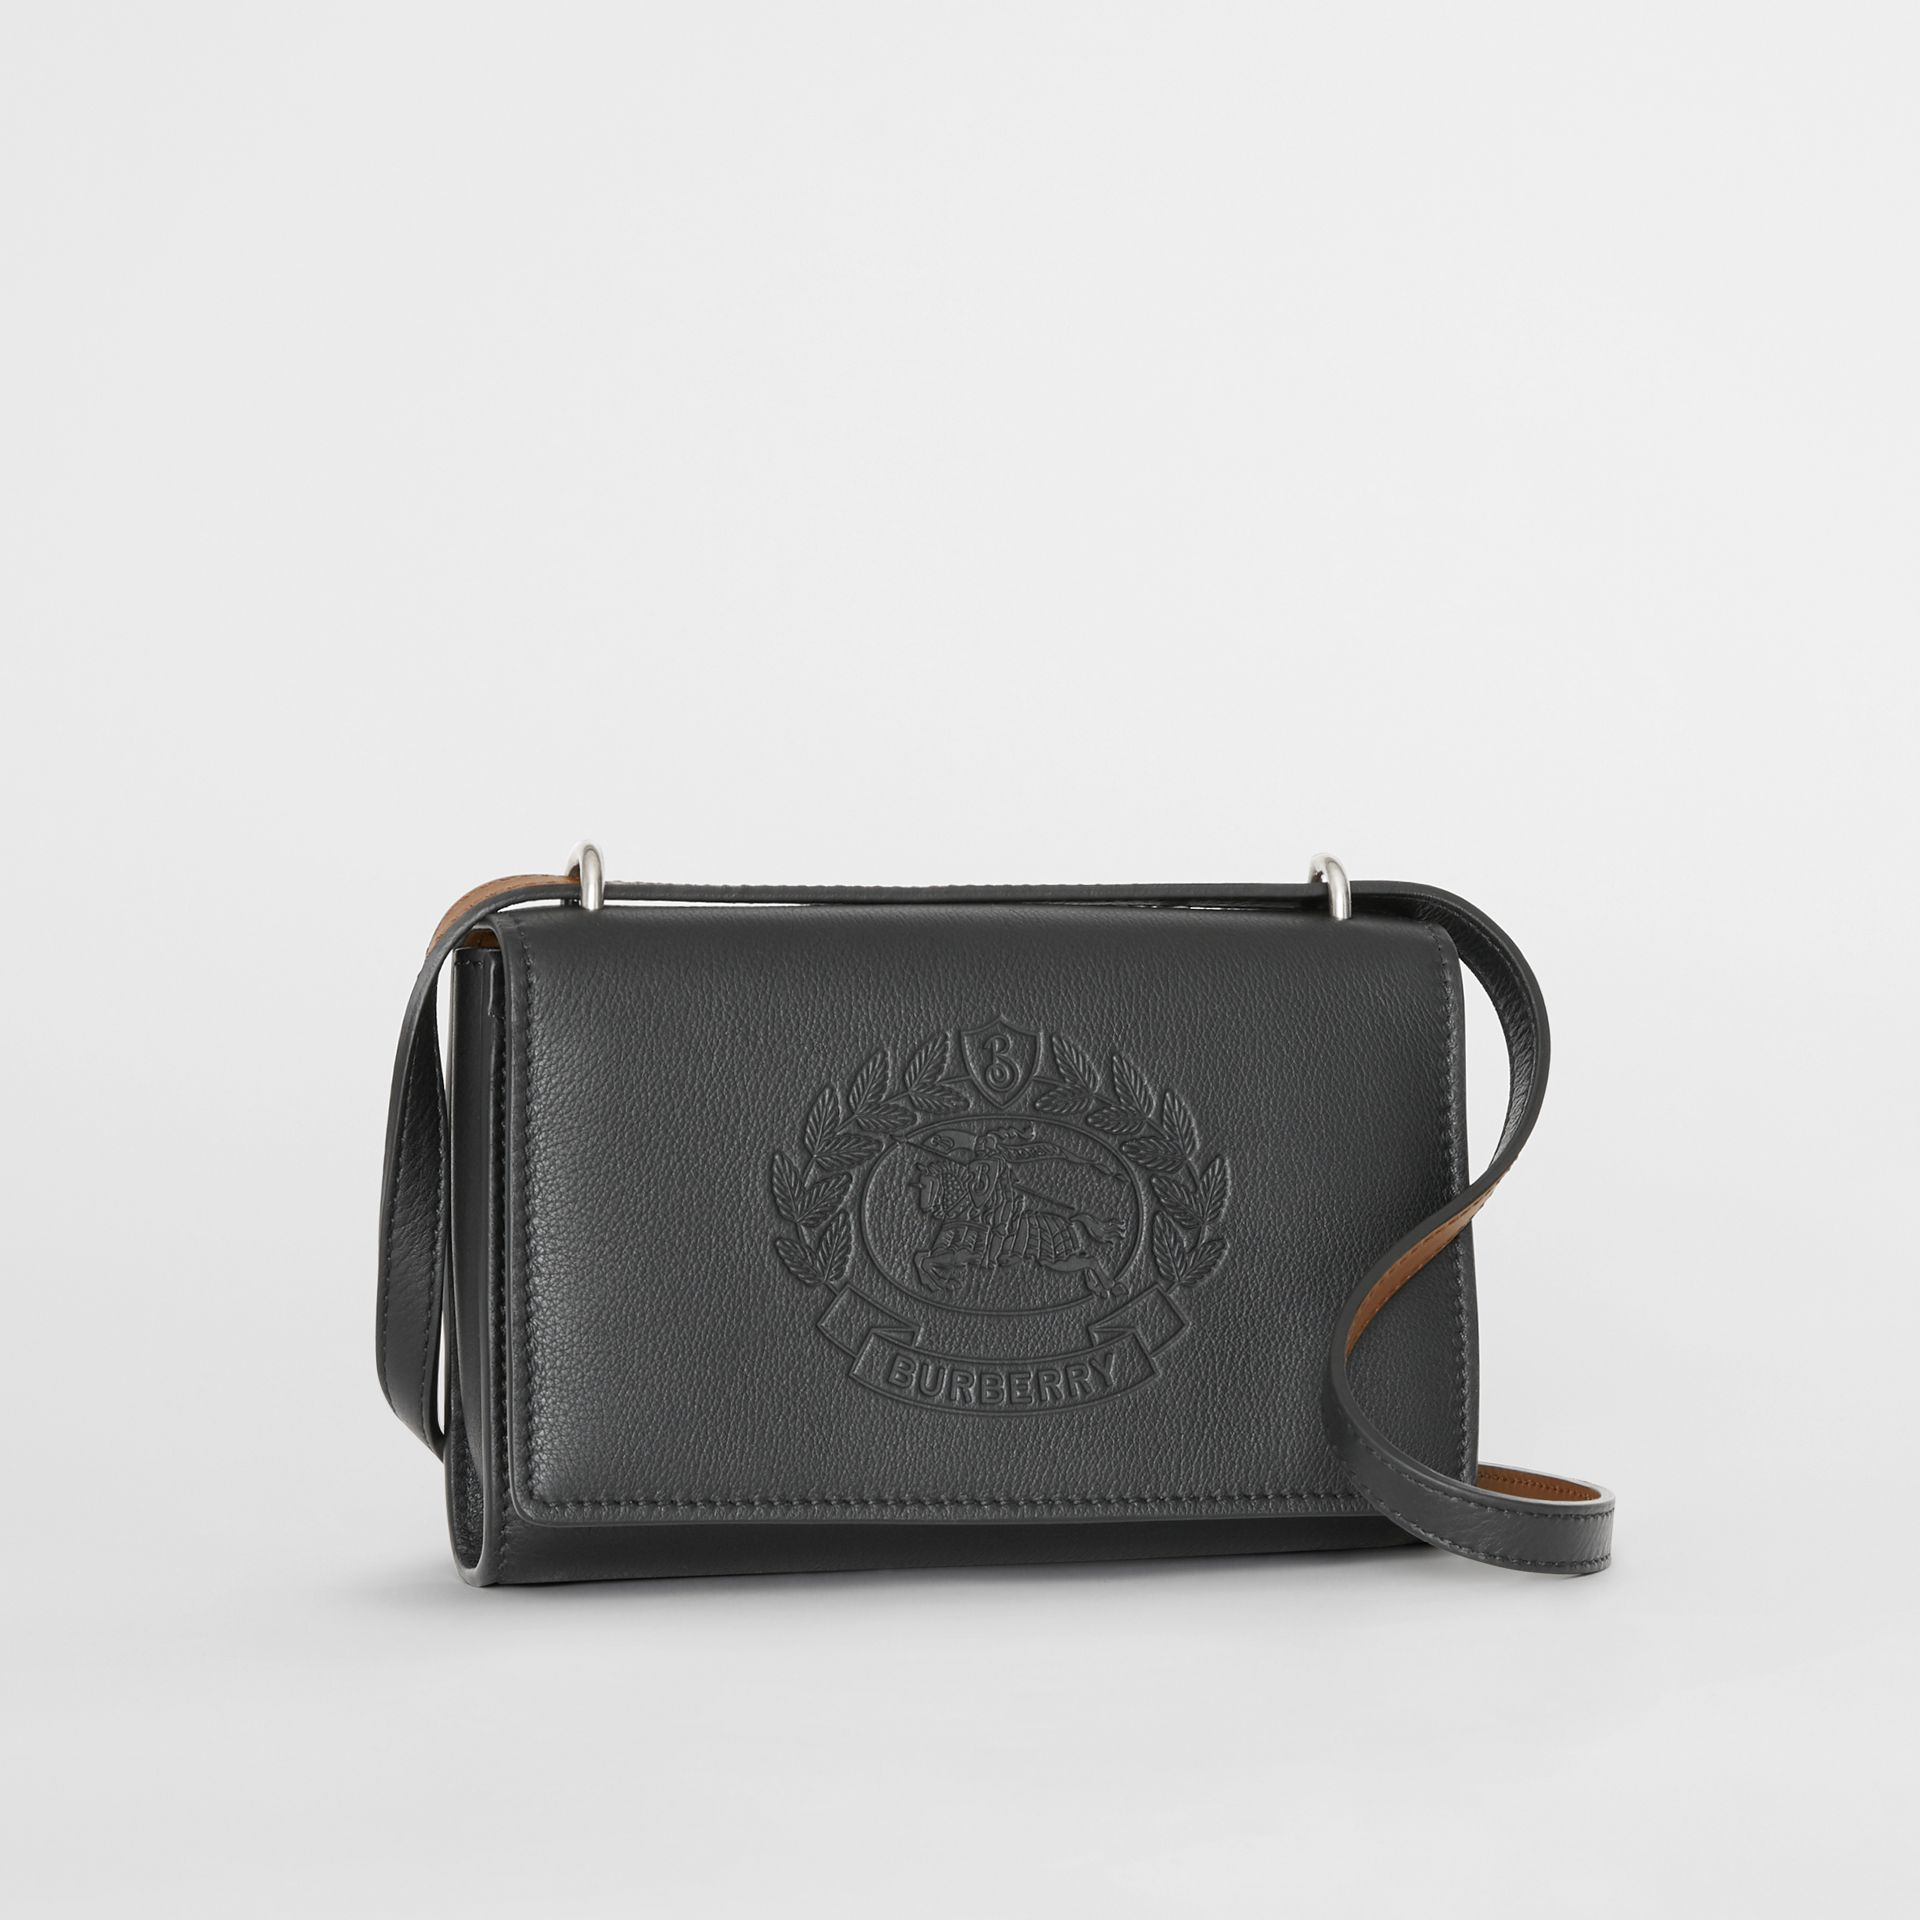 Embossed Crest Leather Wallet with Detachable Strap in Black - Women | Burberry Hong Kong - gallery image 6